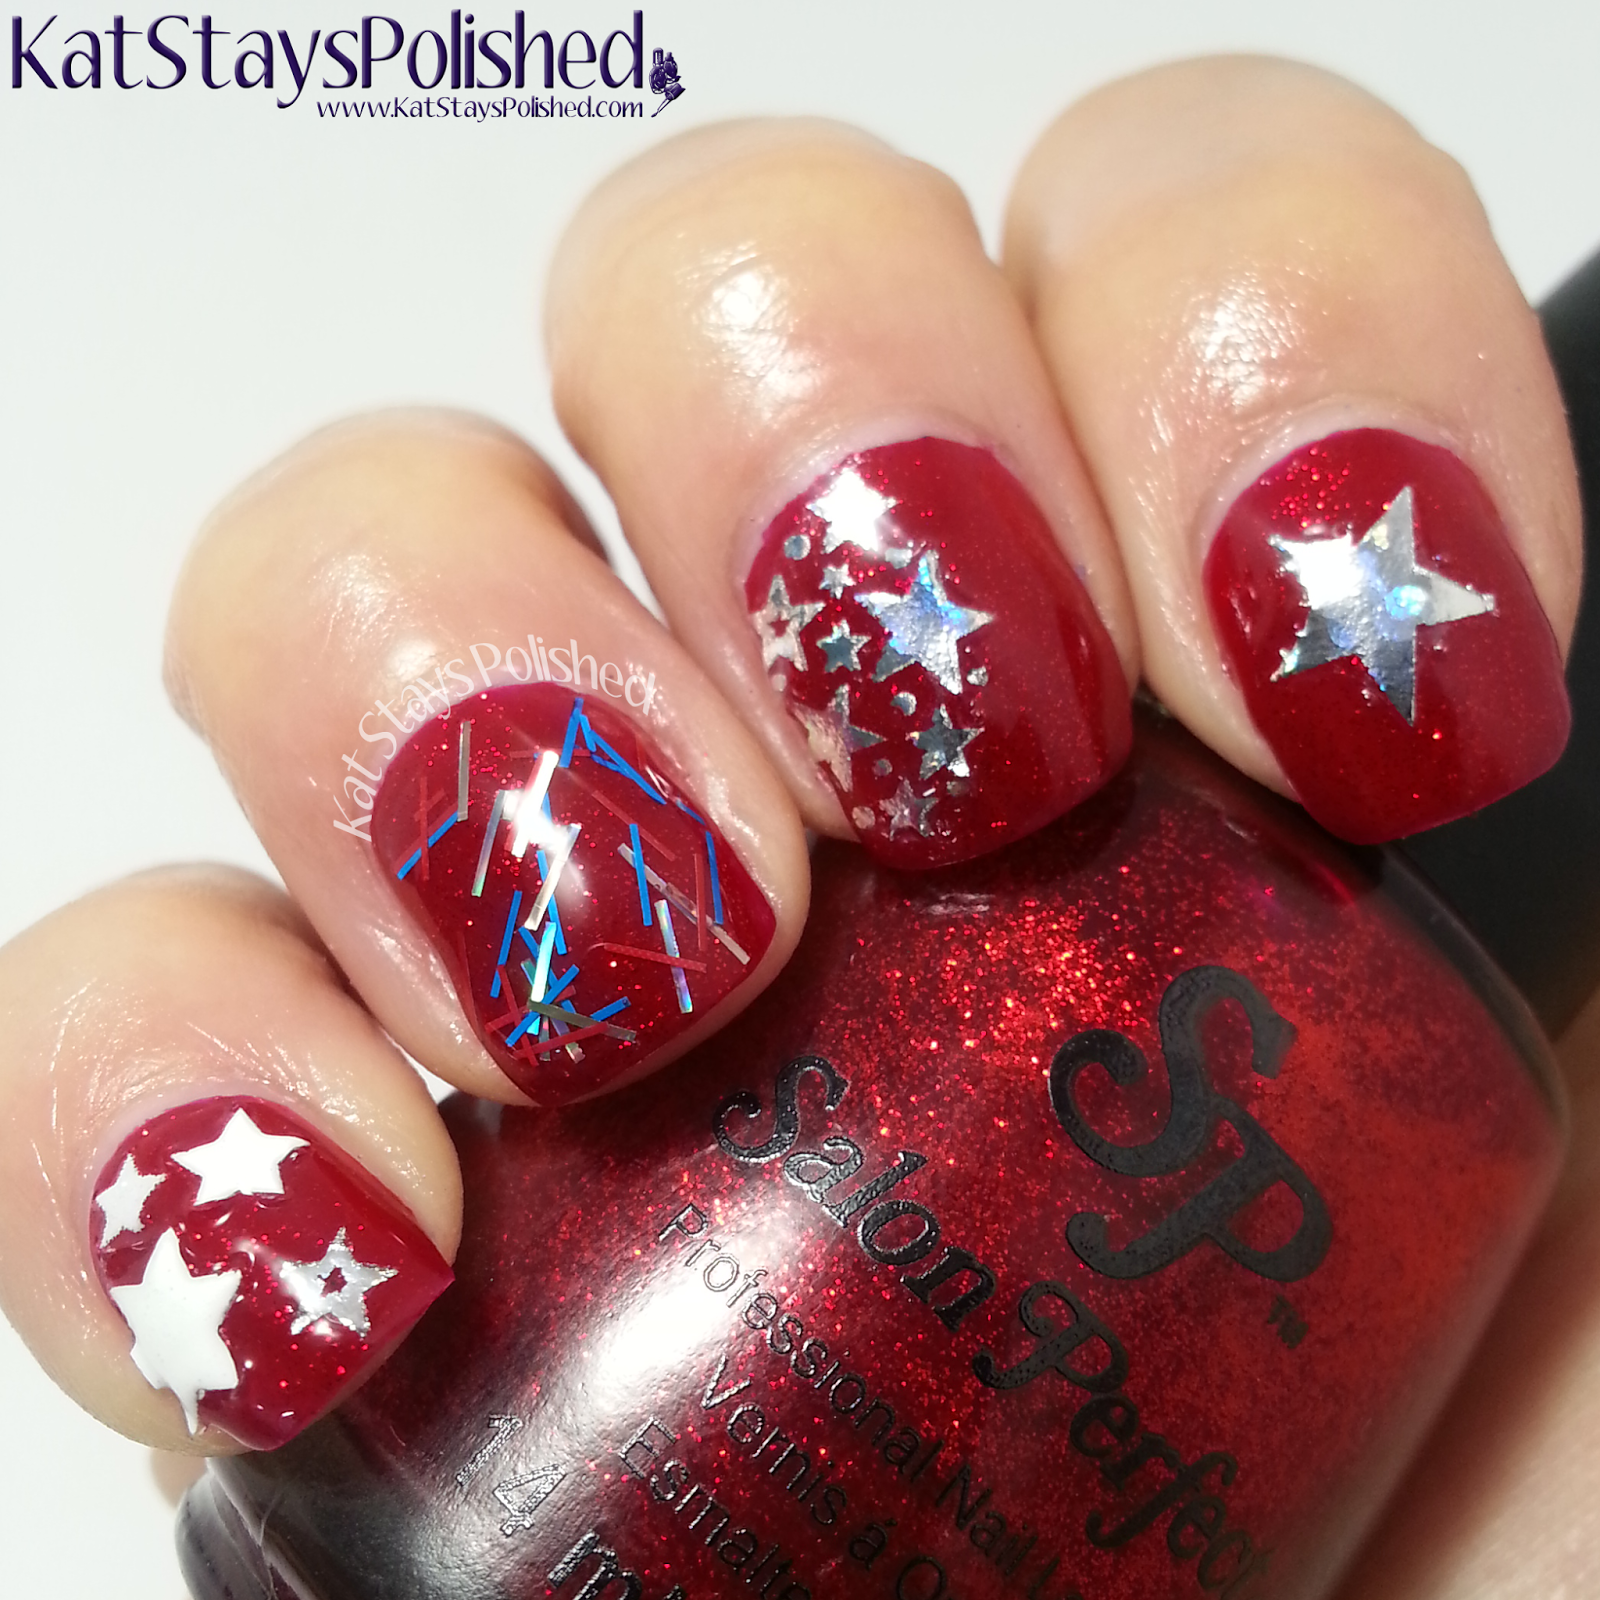 Salon Perfect - Paint the Town Red White and Blue - Special Effect Top Coat - Grand Finale and Nail Decals | Kat Stays Polished